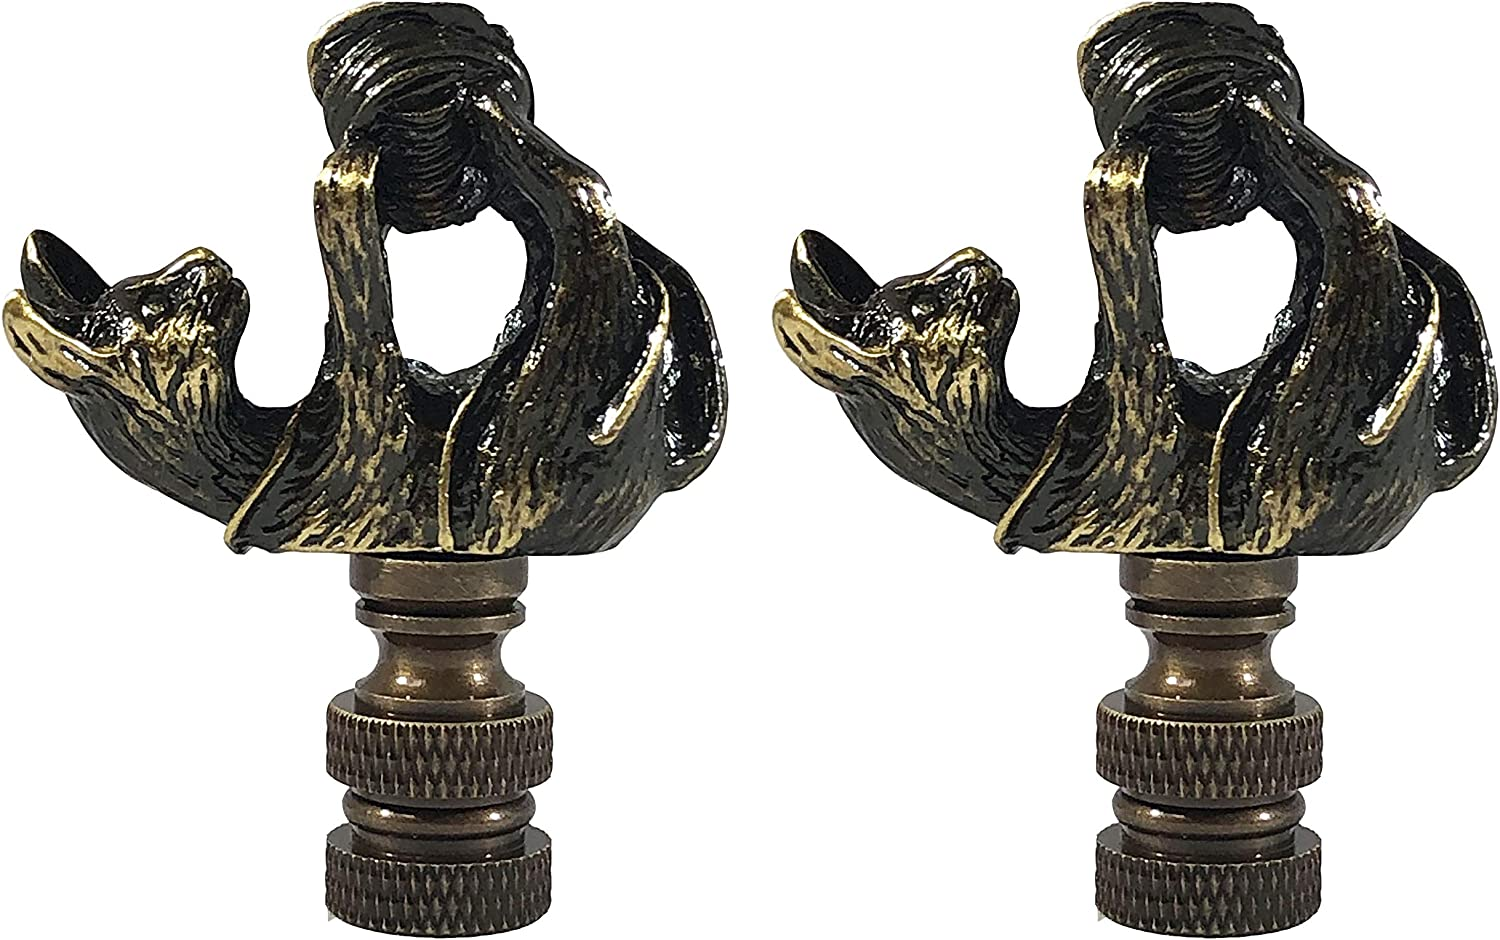 Royal Designs Inc. Decorative Playful Cat Finial Lamp B Antique Very popular! Manufacturer direct delivery